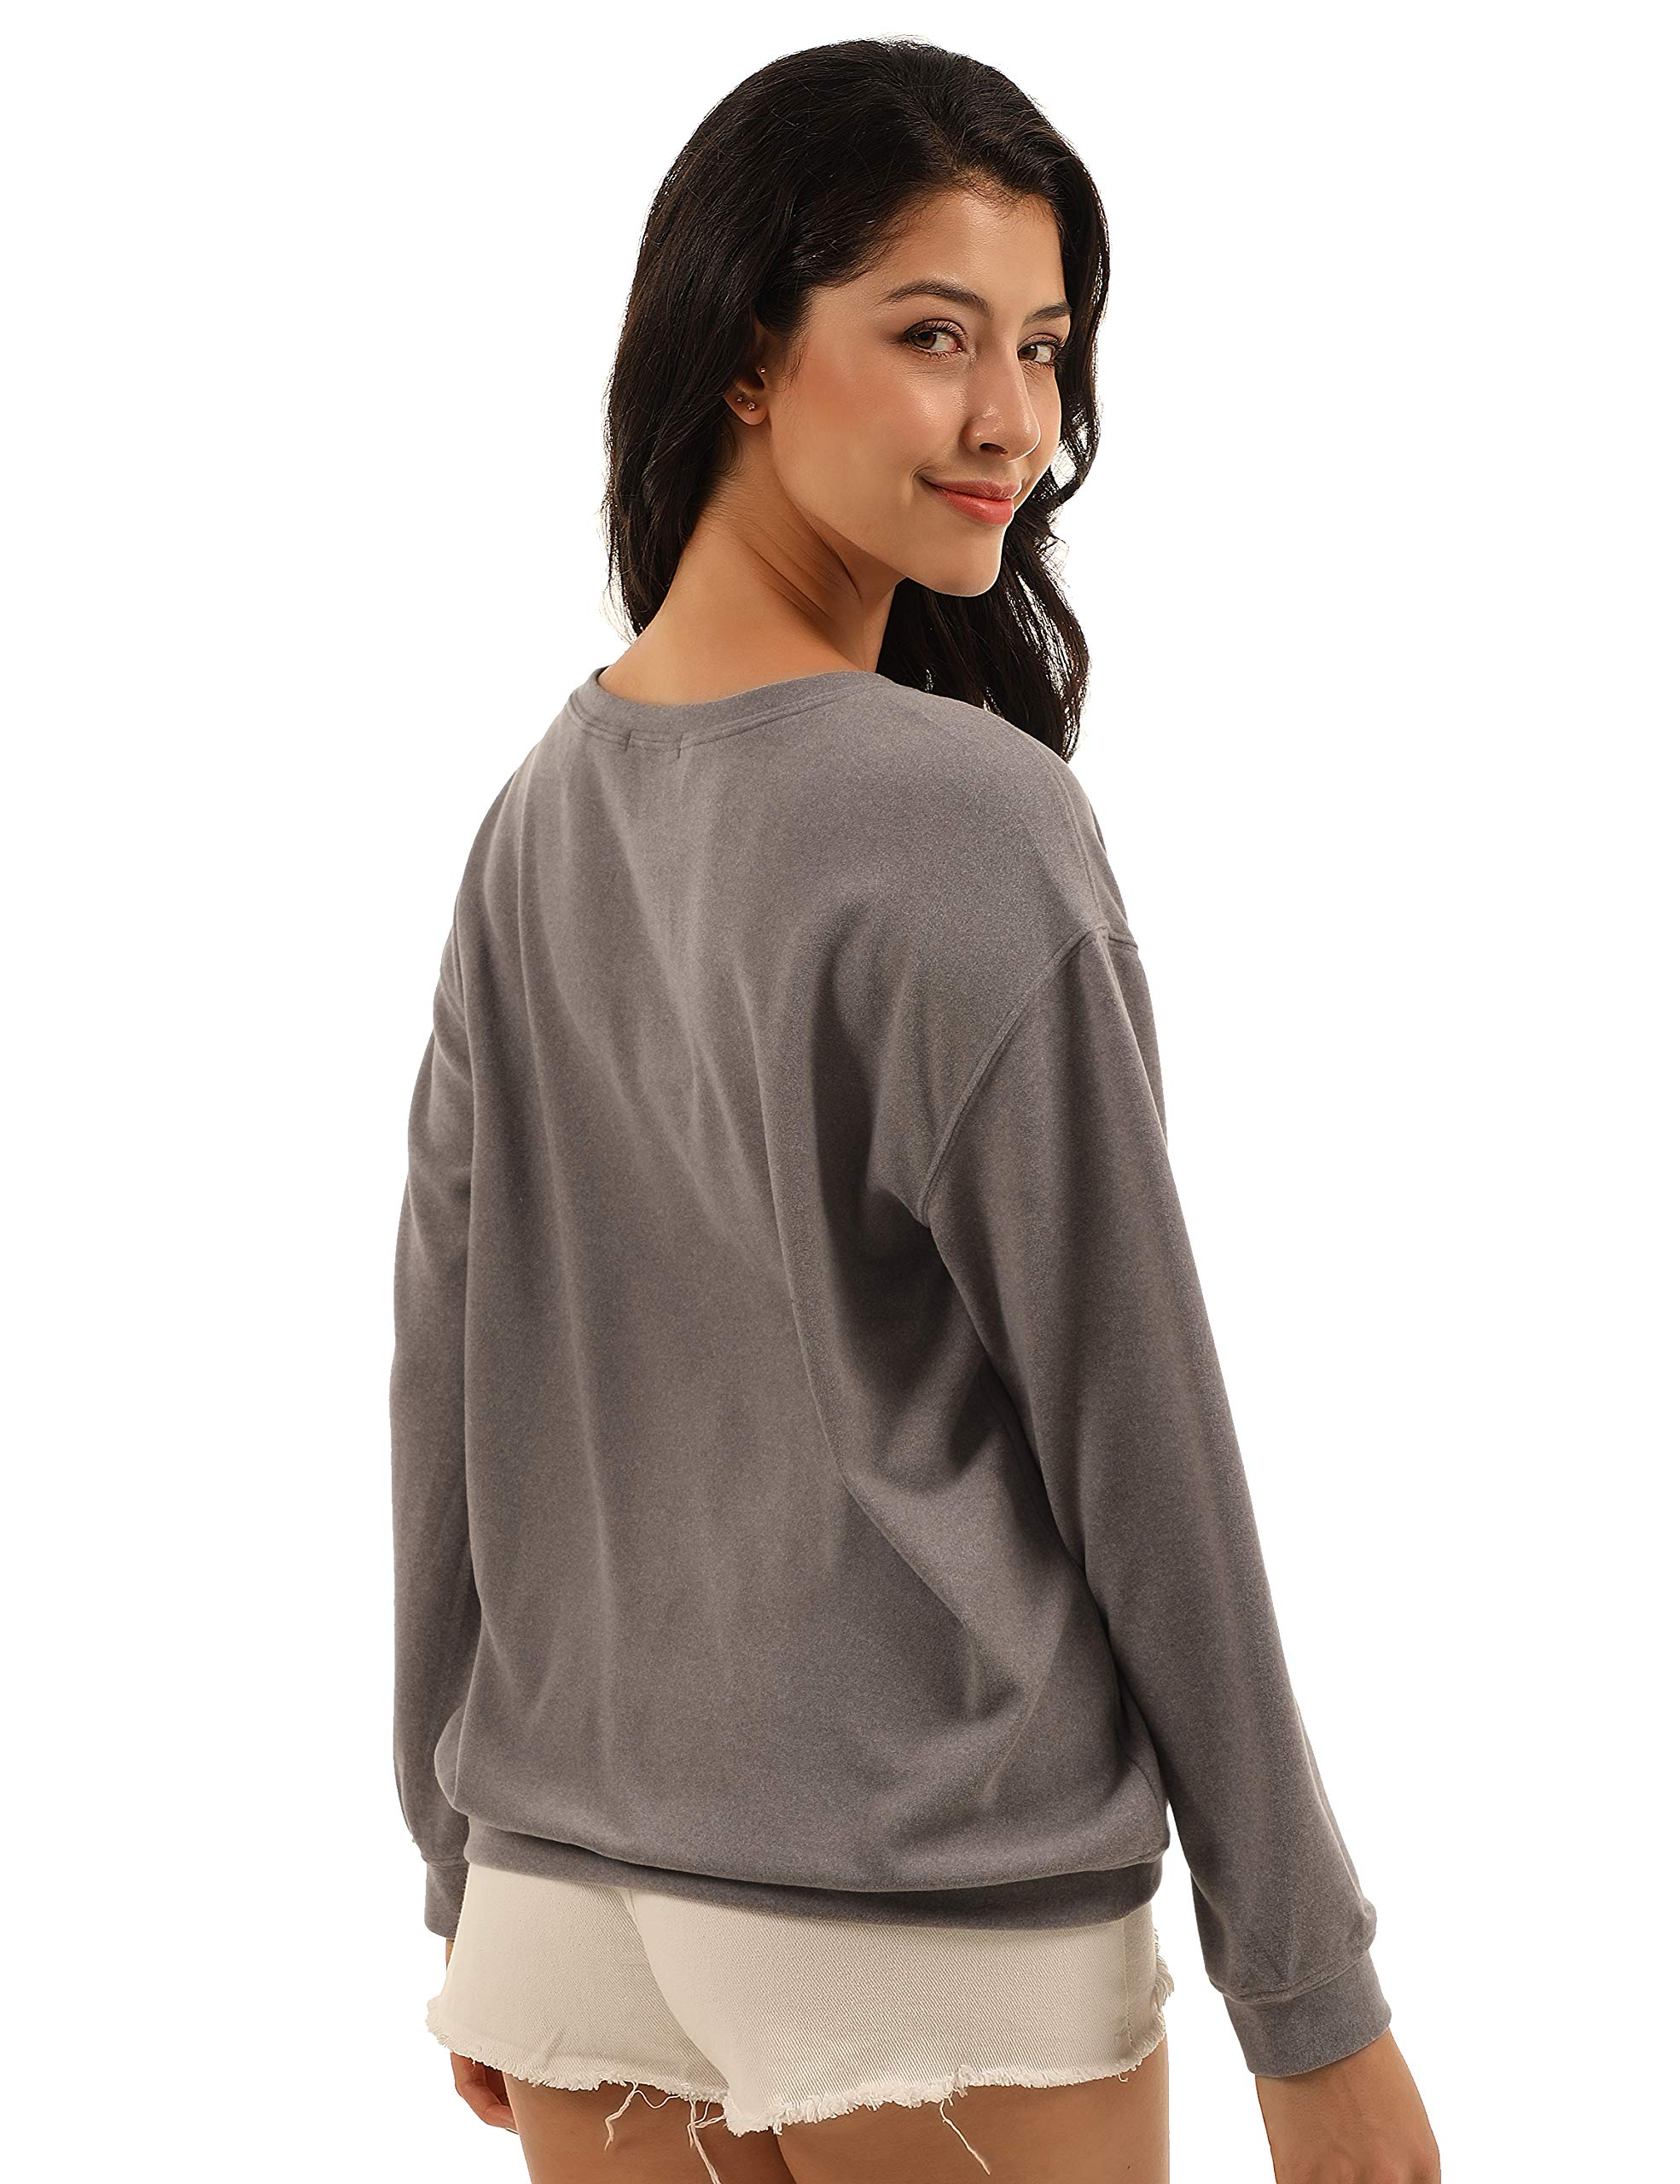 Blooming Jelly Womens Letter Print Jumper Round Neck Sweatshirt Long Sleeve Pullover Casual Tops(Grey,S=UK 6-8)